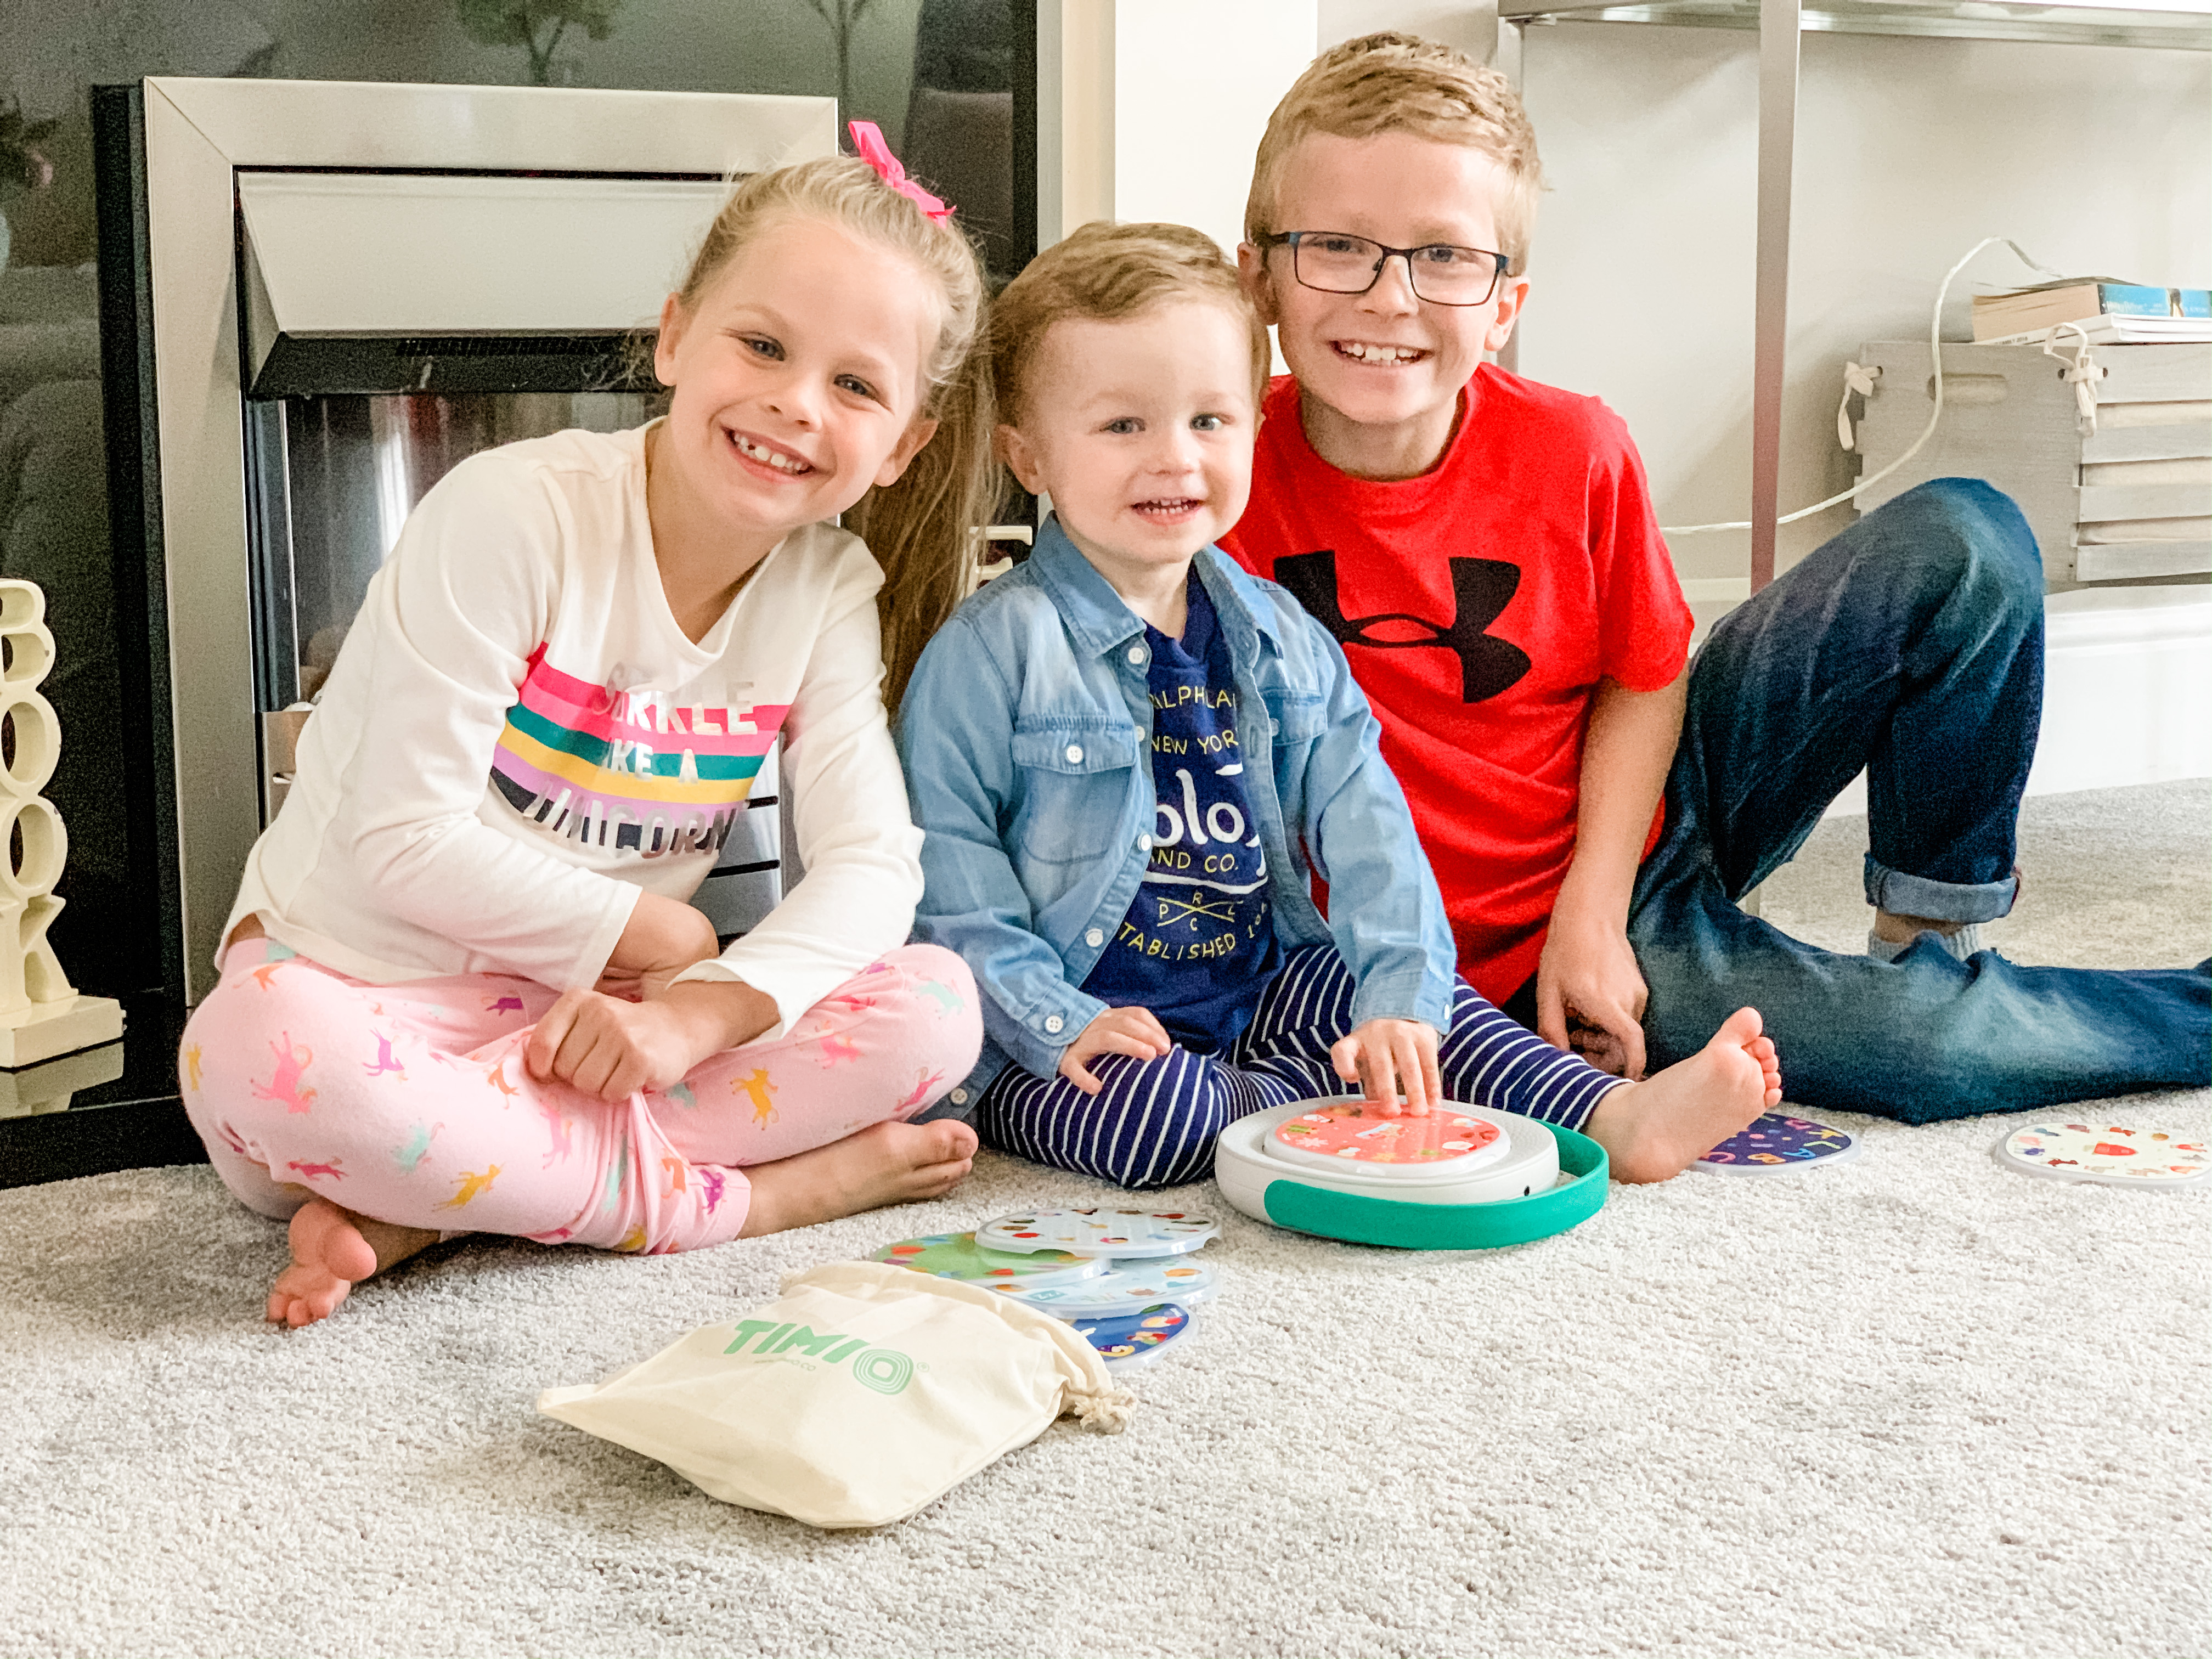 3 children smiling for the camera while playing with a TIMIO kid's audio and music player for learning